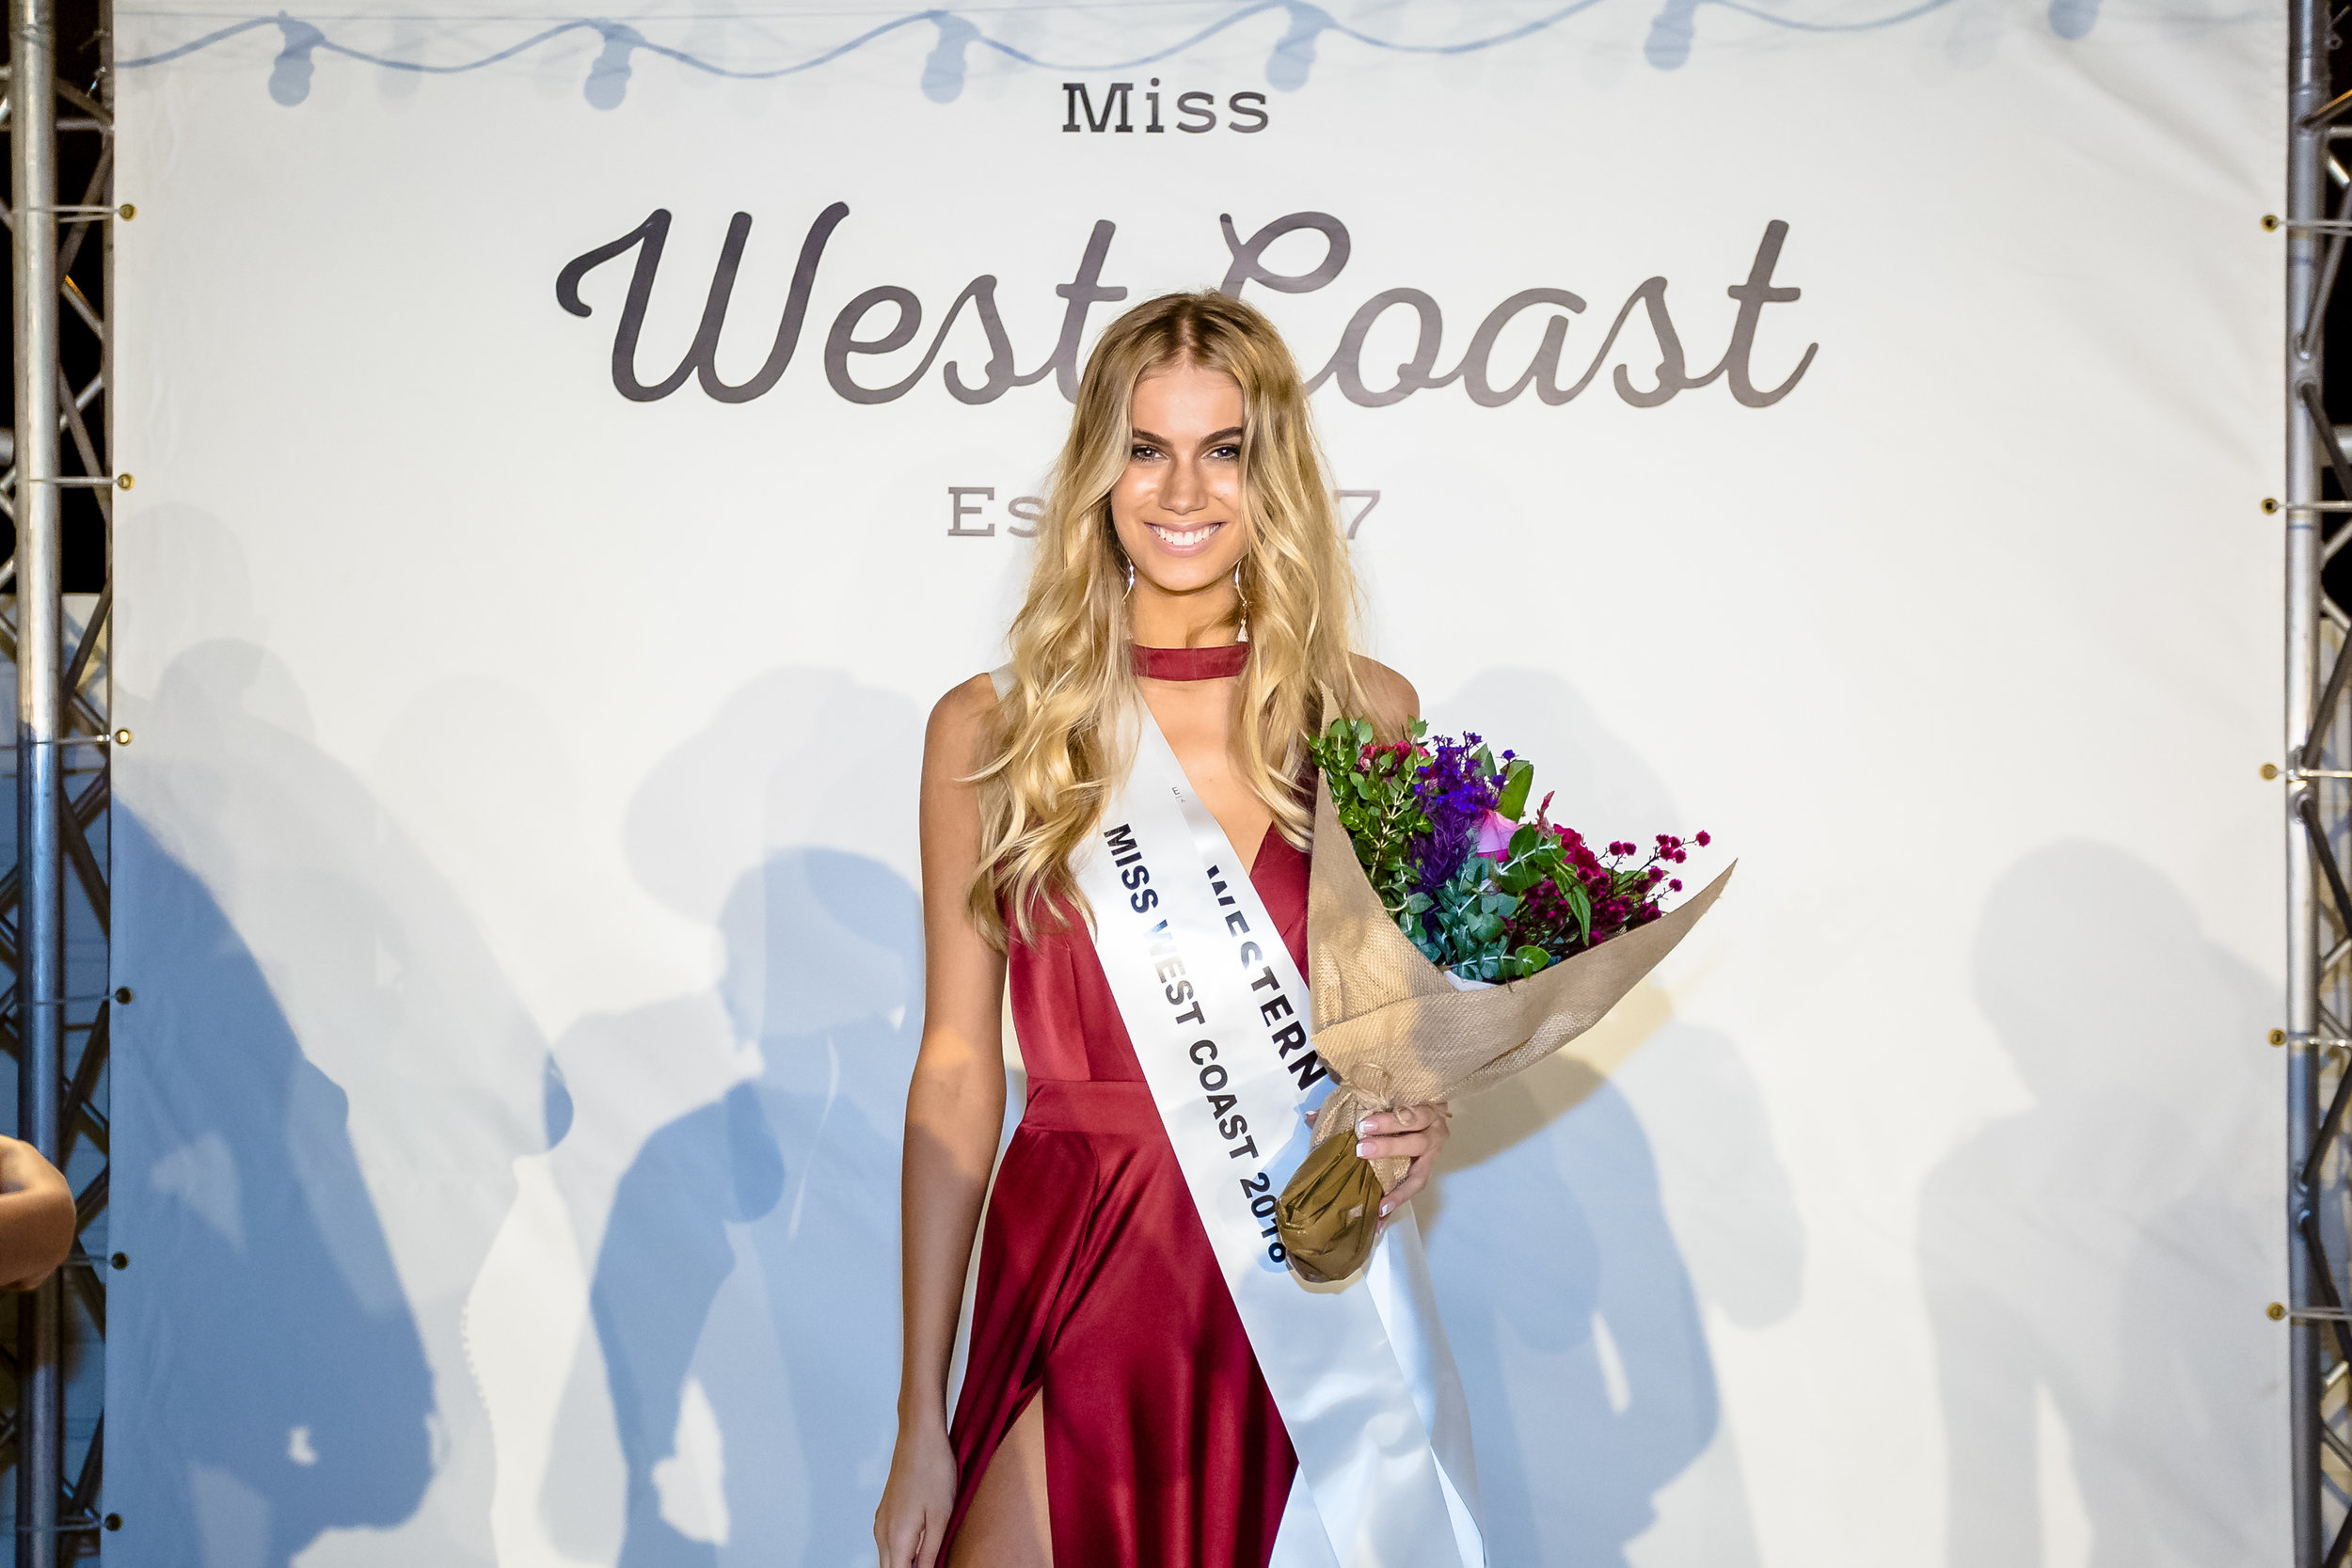 2018.04.06 MISS WEST COAST FINAL FULL ALBUM-290.jpg